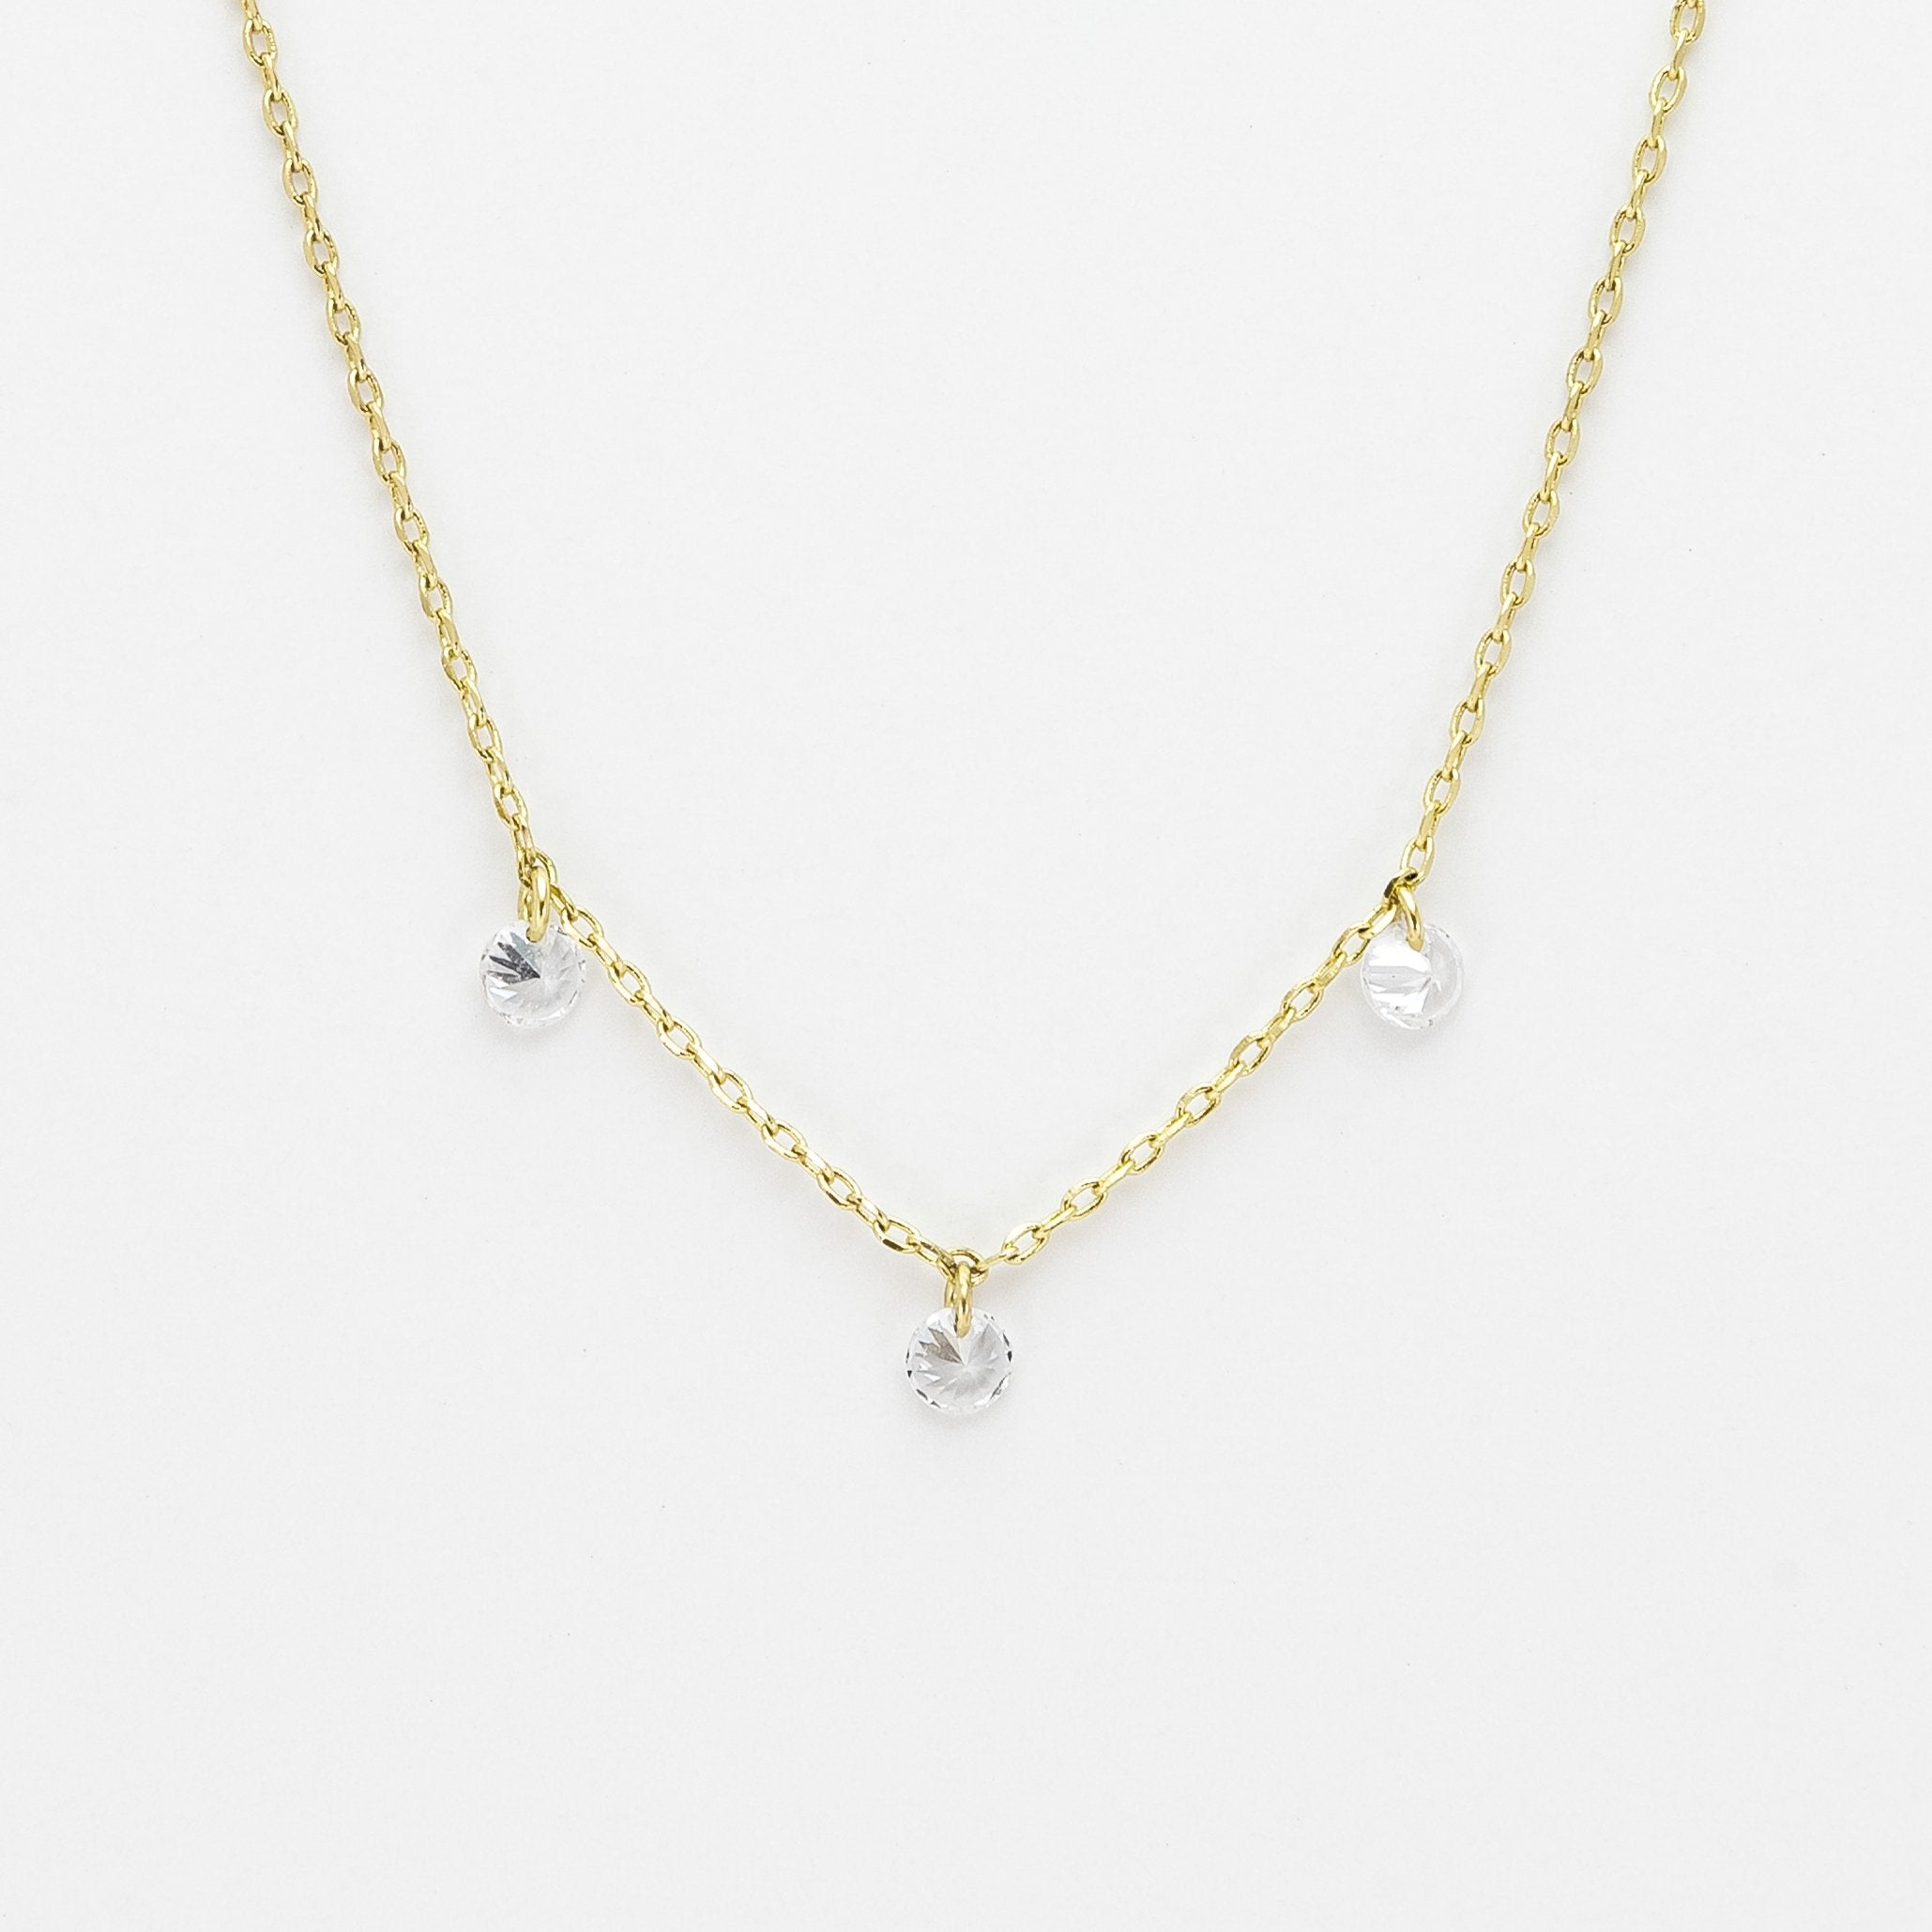 Estee Collection Fixed Necklace